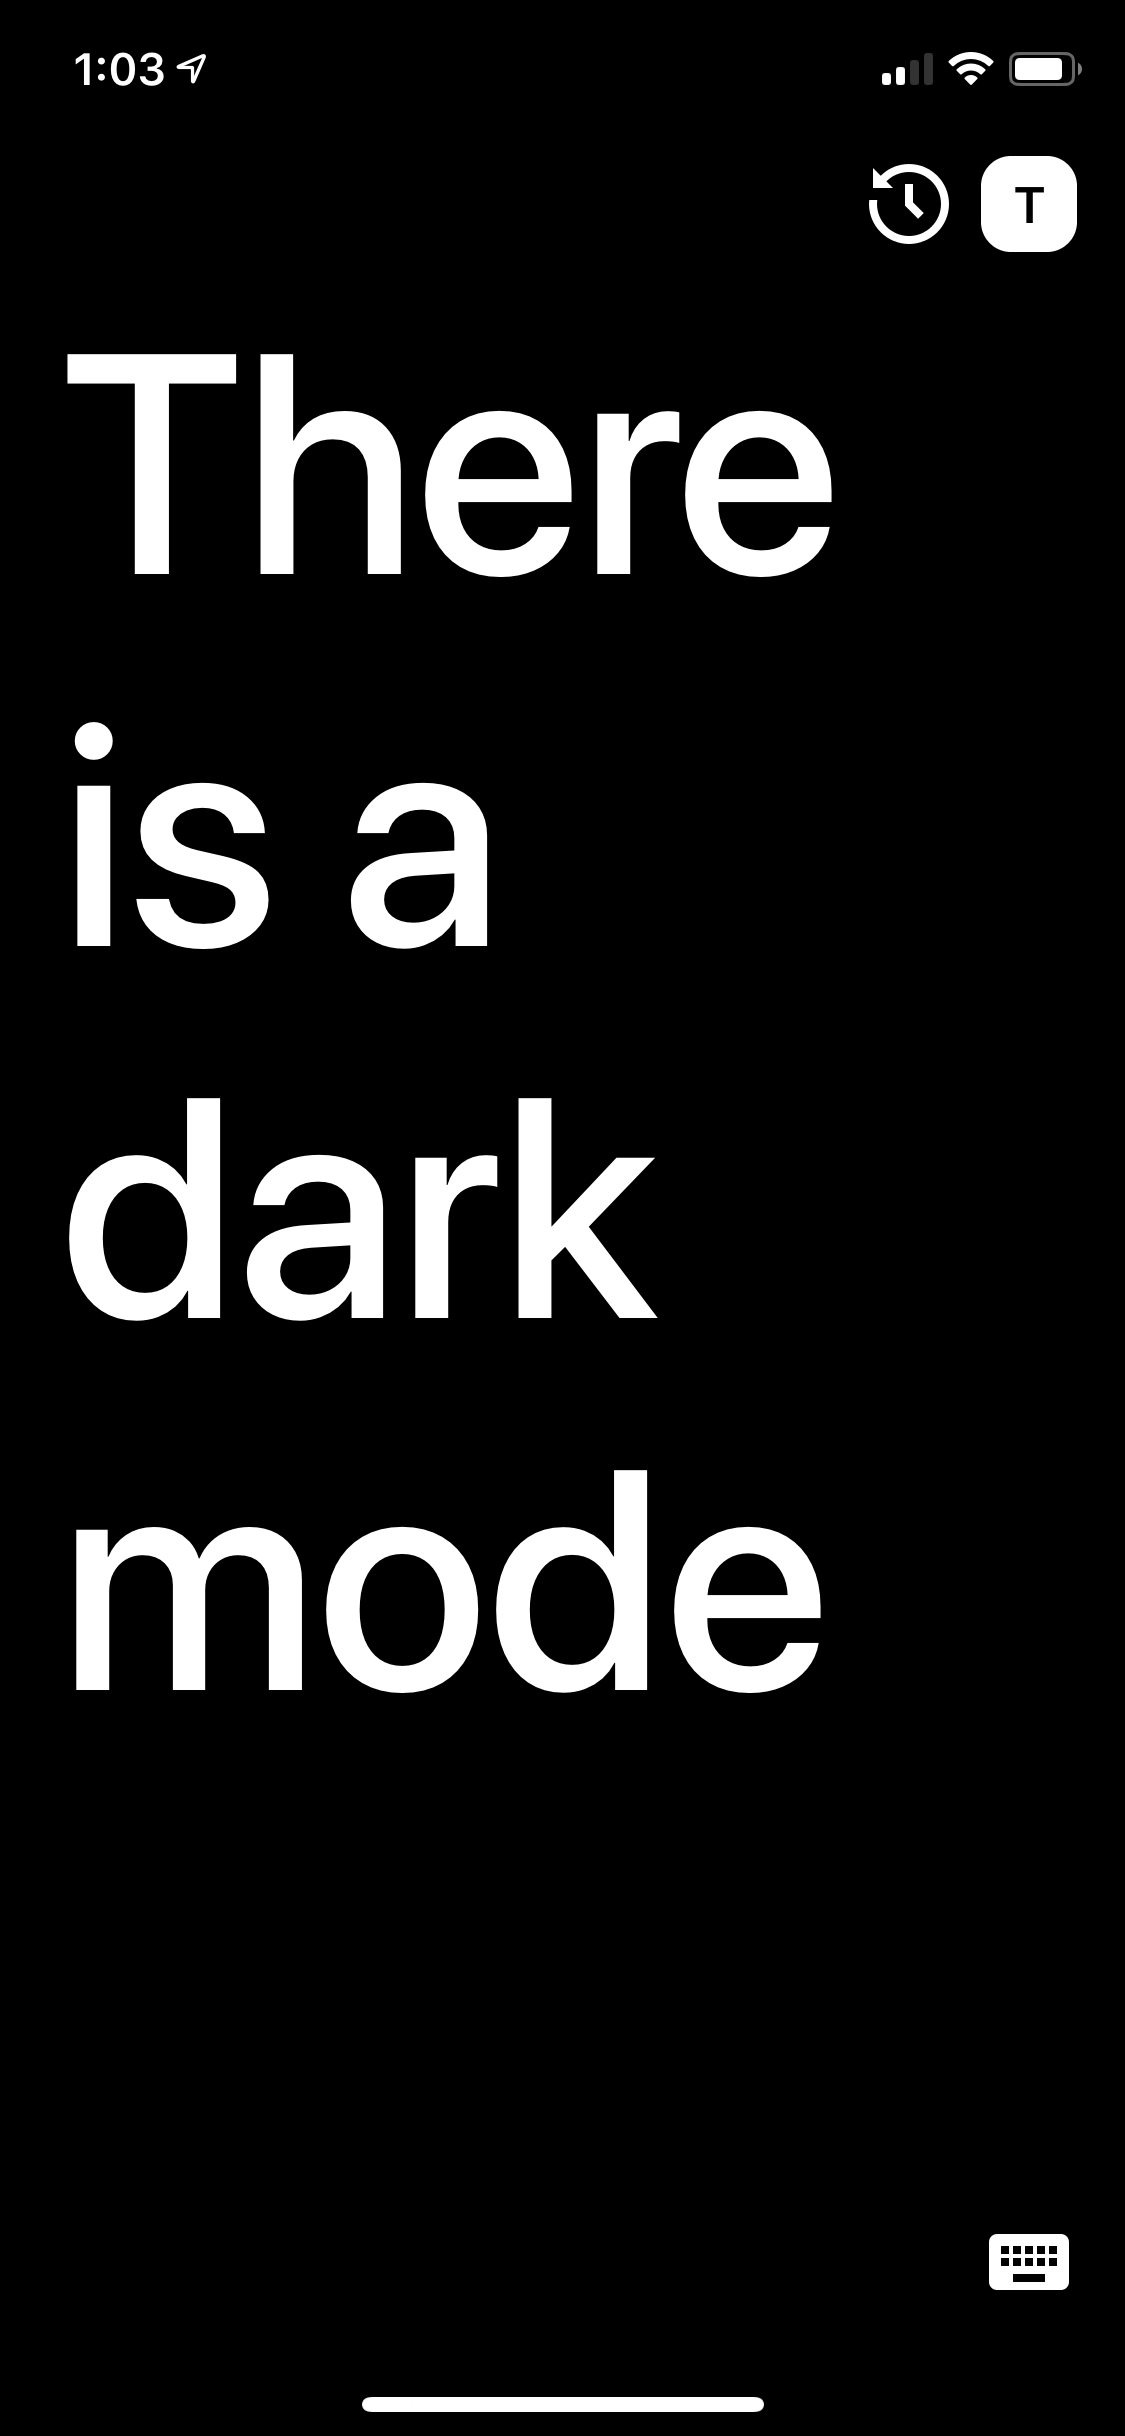 Example screen of the app in dark mode, with a black background and white text.